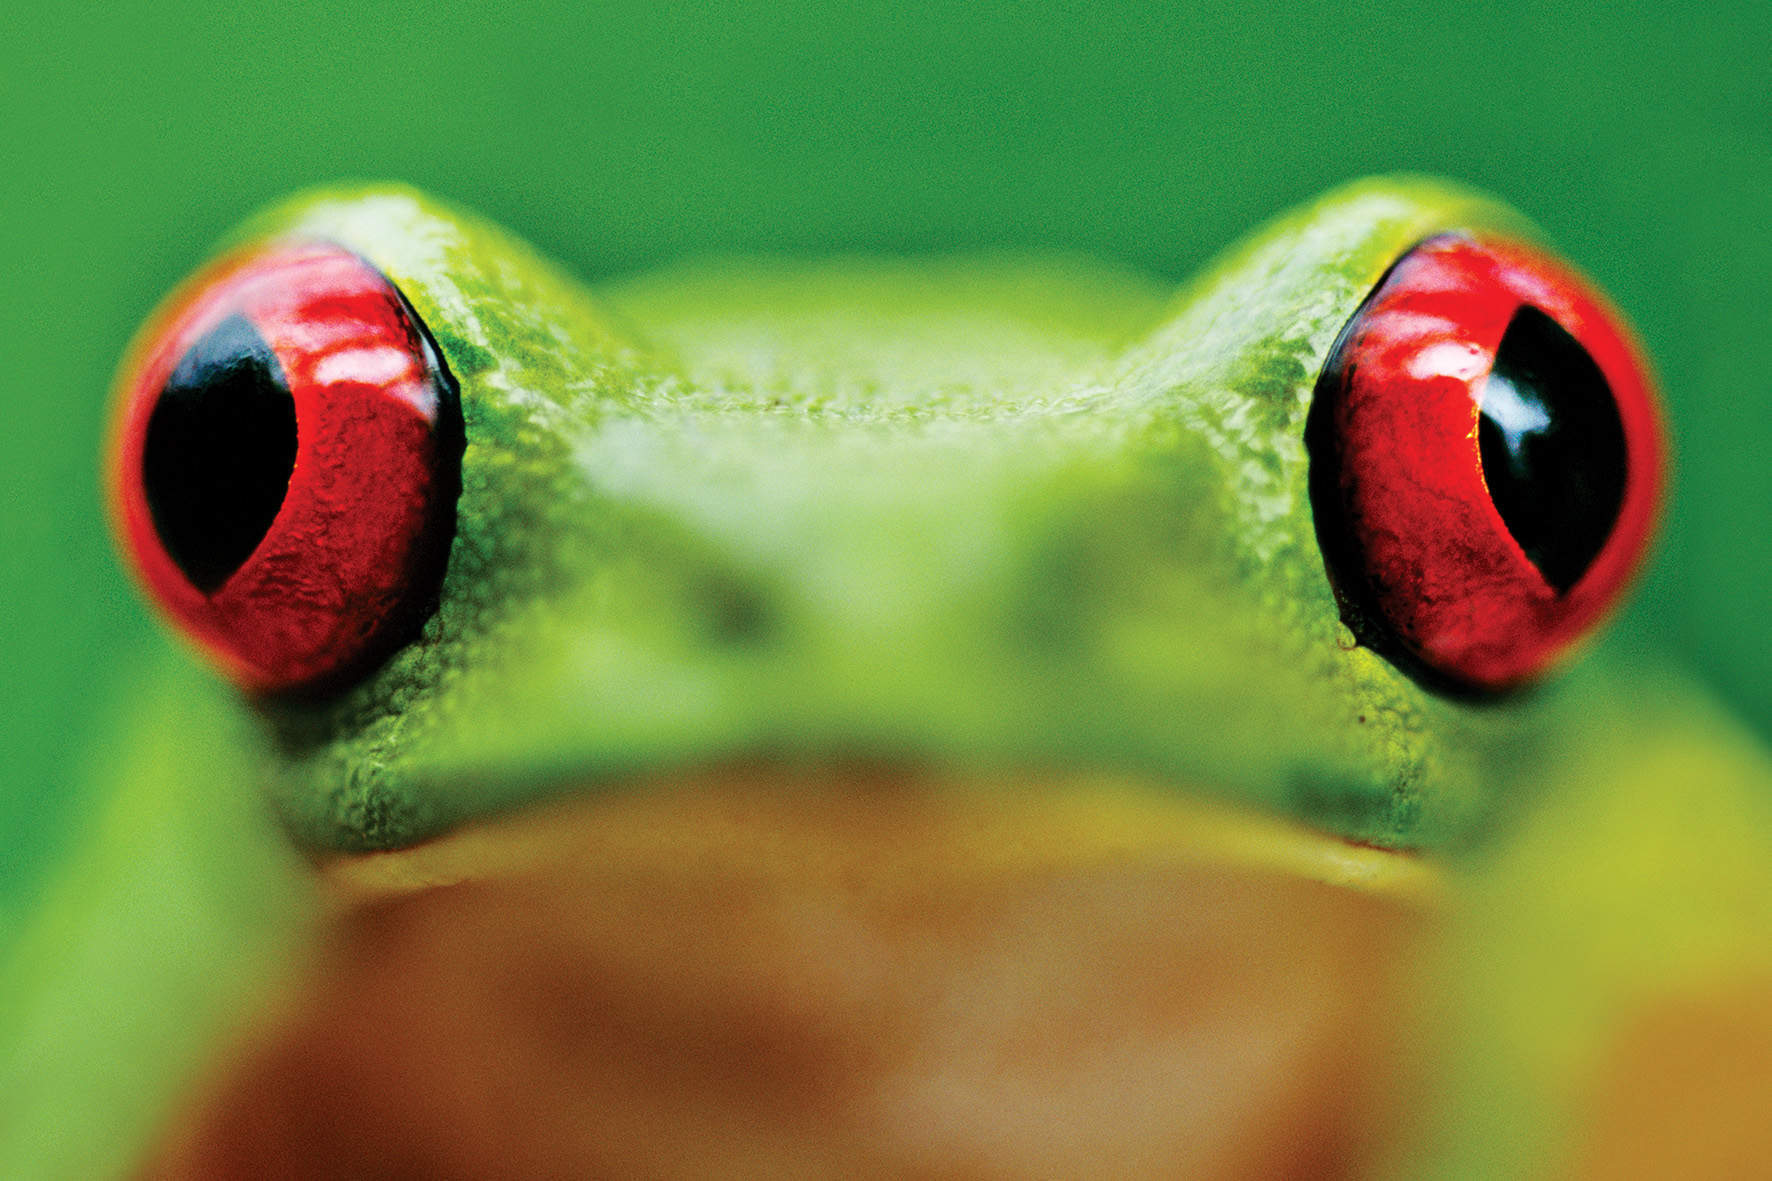 Why dissecting a frog explains nothing about life